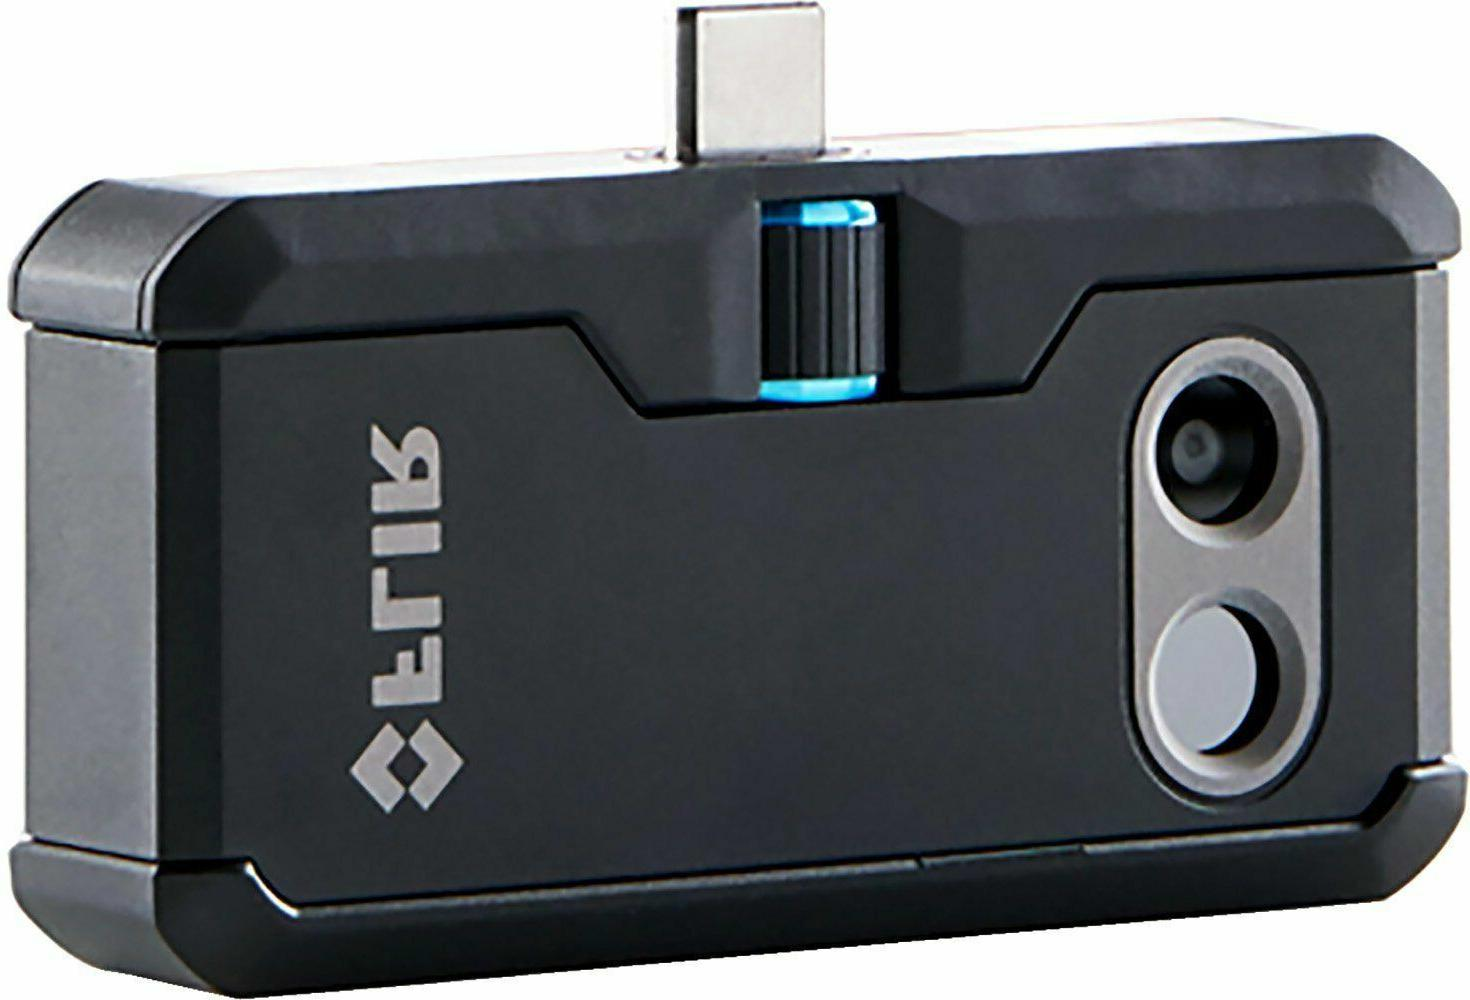 Flir Thermal Attachment and iOS